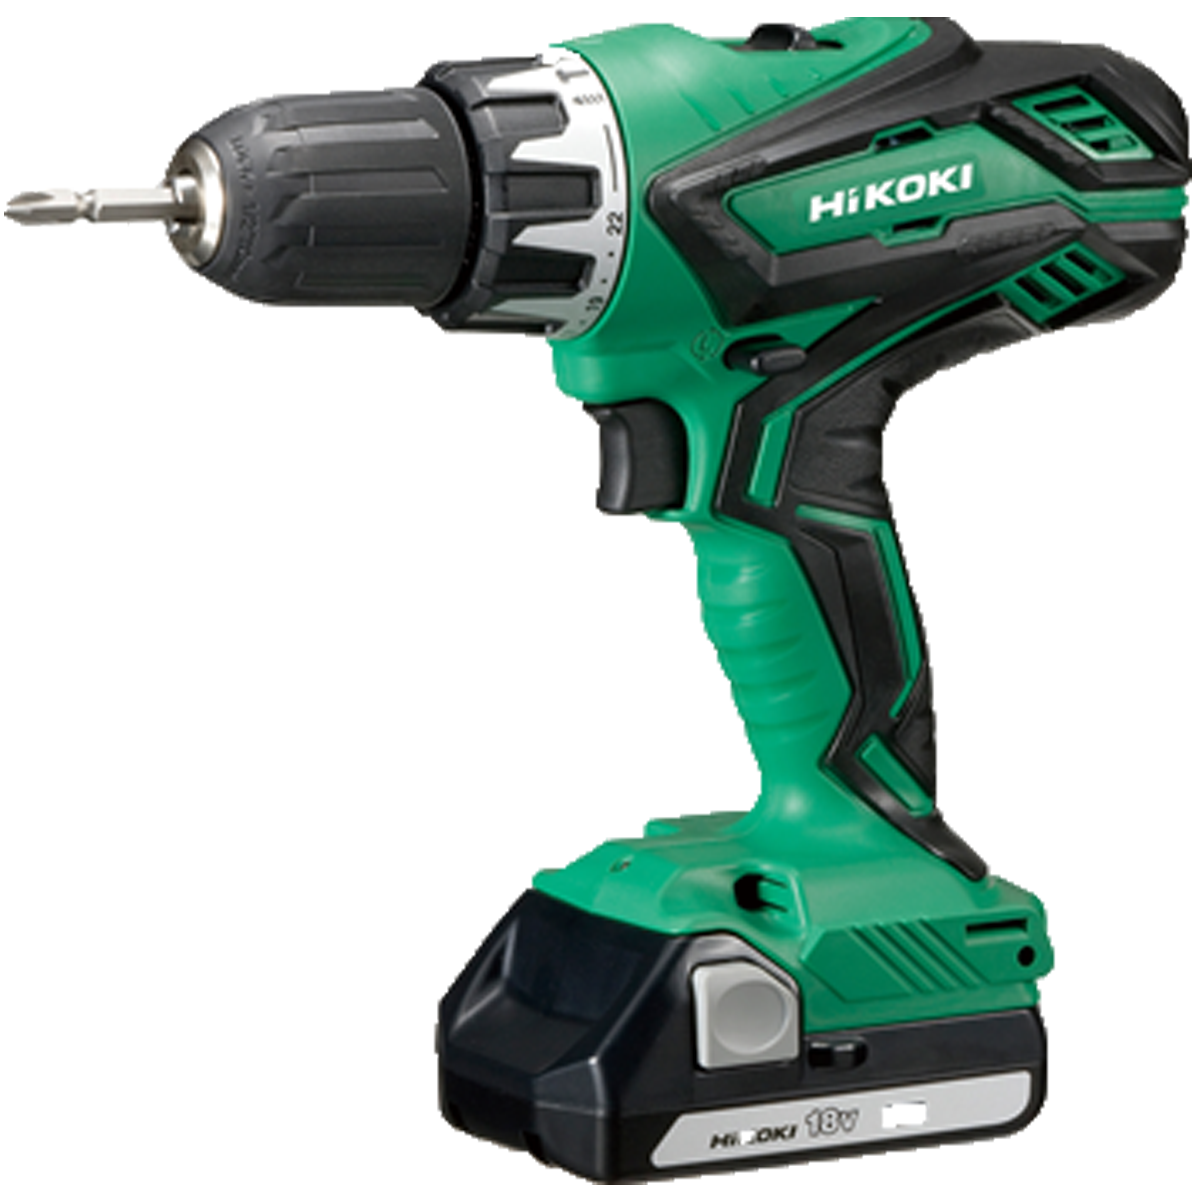 PREMIER STOCKISTS OF A LARGE SELECTION OF POWER TOOLS FOR EVERY APPLICATION.